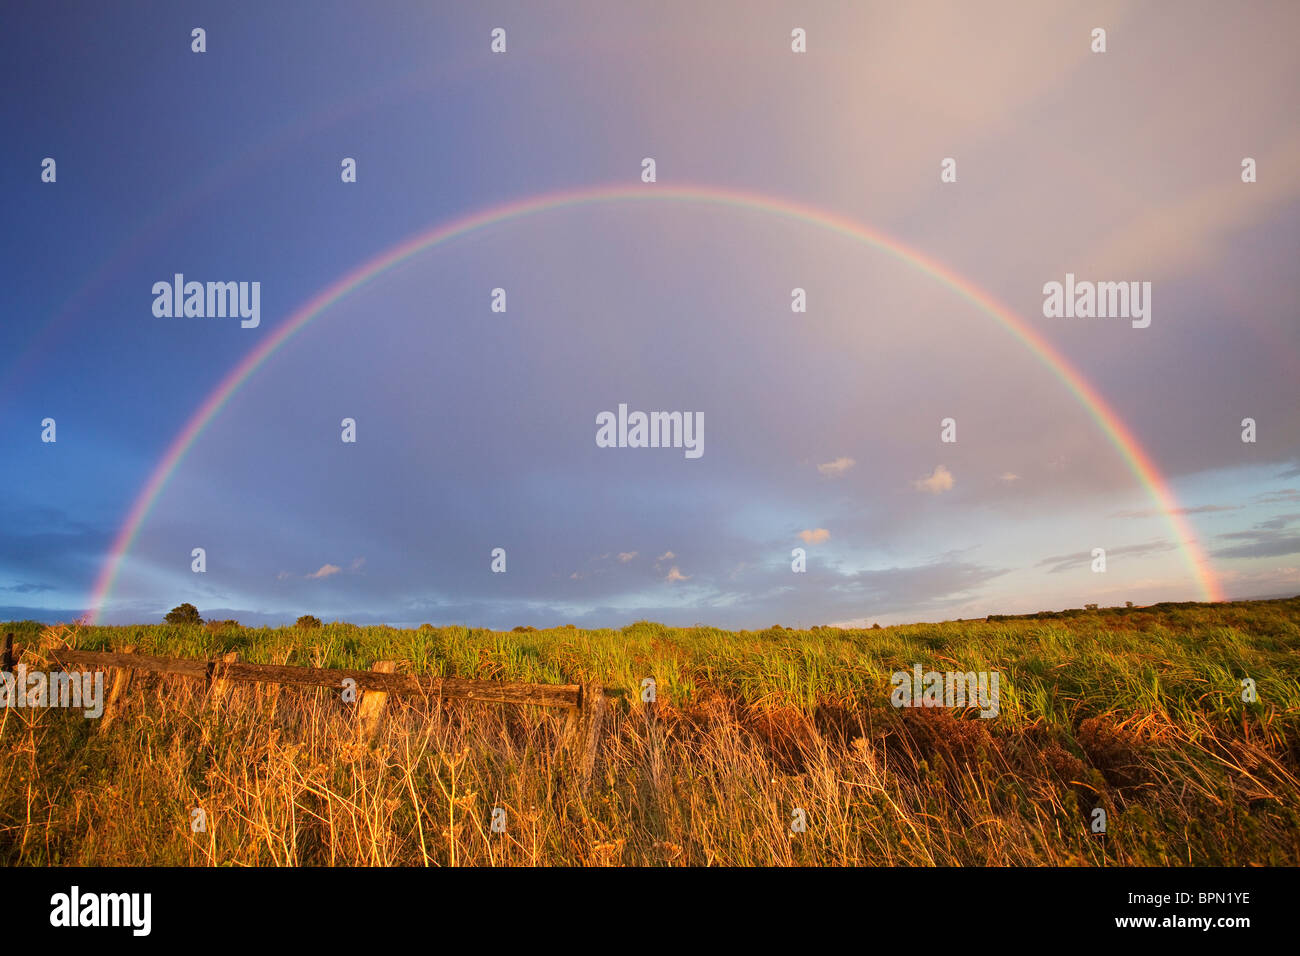 A semicircular double rainbow over a field of Elephant Grass in North Lincolnshire, England, UK - Stock Image